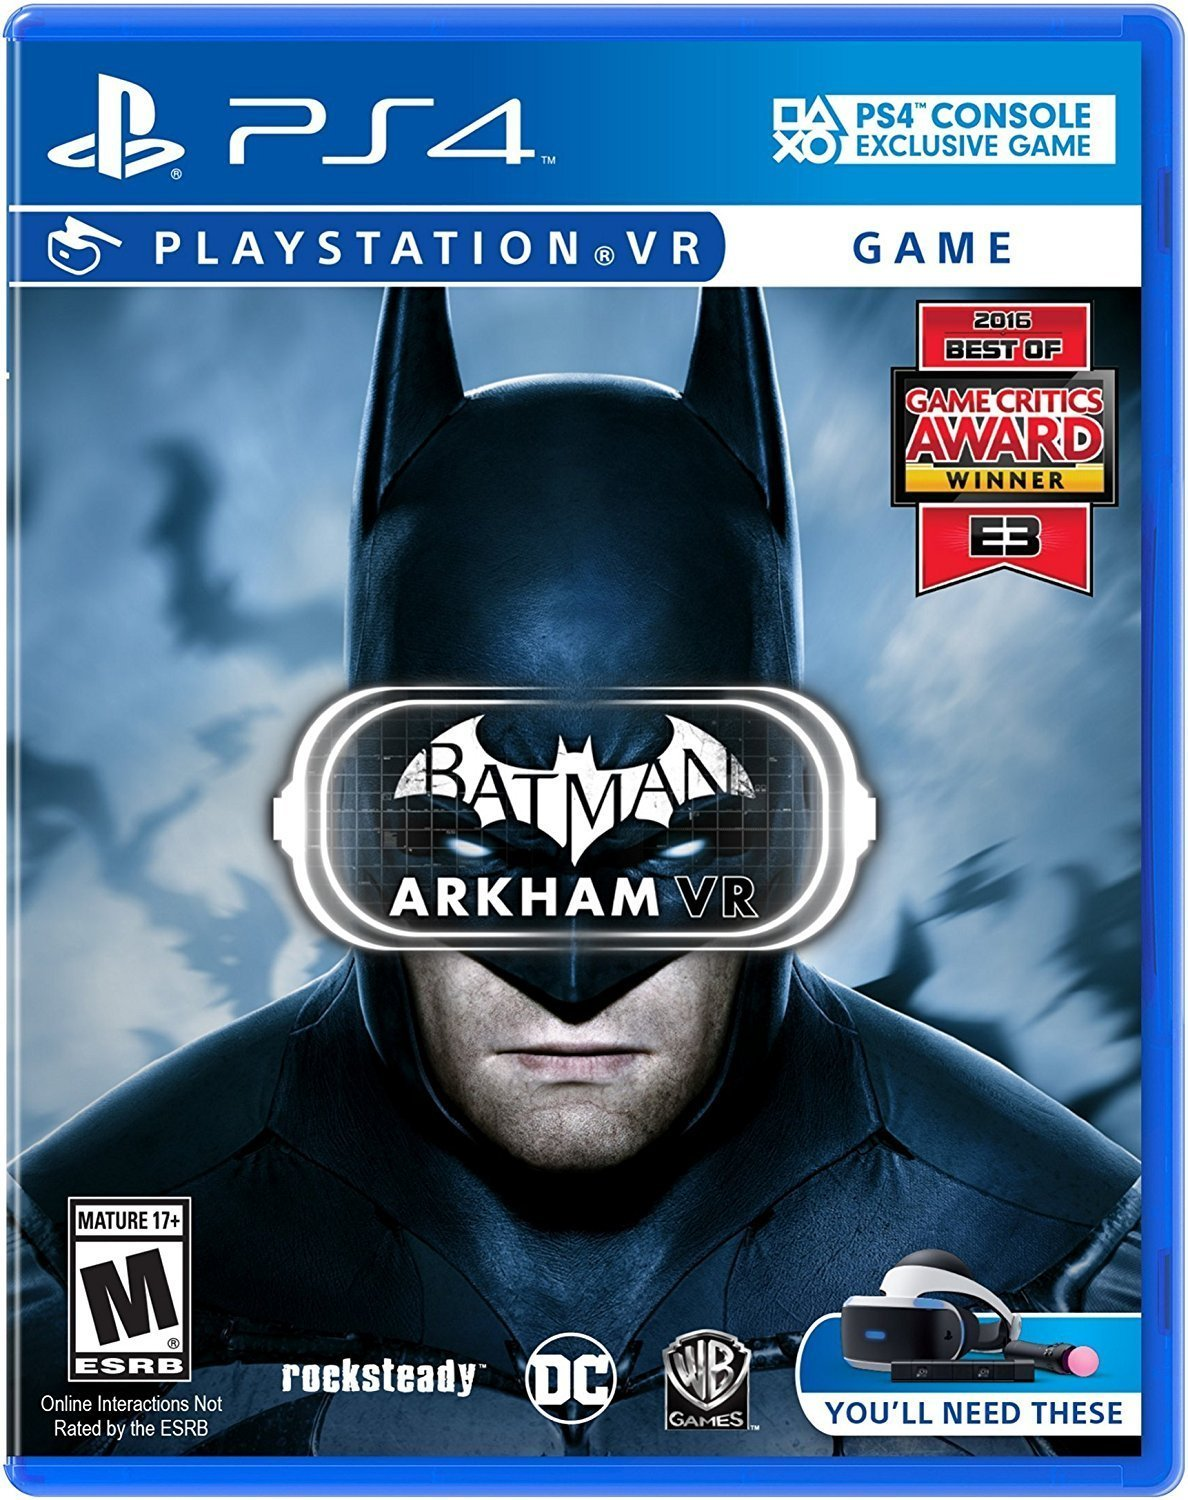 PlayStation VR Launch Bundle (3 Items): VR Launch Bundle,PlayStation 4 Pro 1TB Destiny 2 Bundle,VR Game Disc Arkham VR by Sony VR (Image #5)